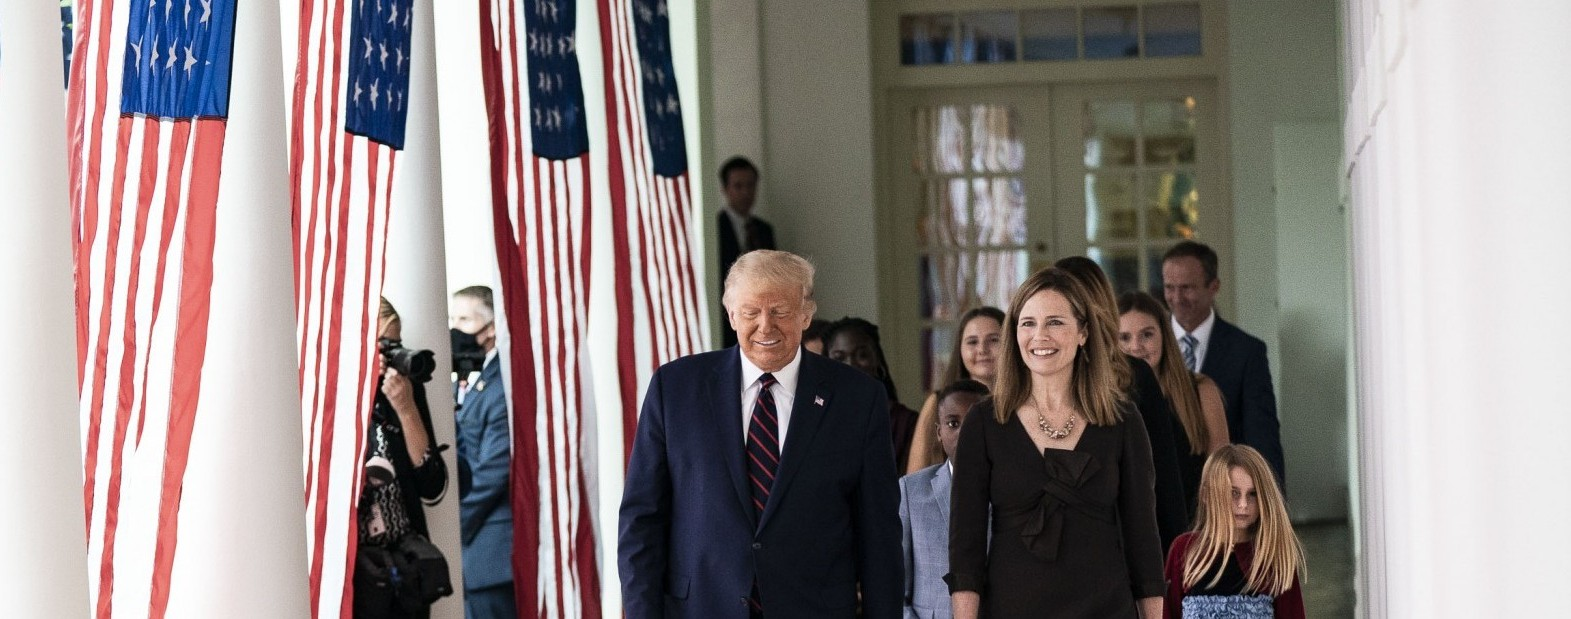 How Democrats Could Weaken Trump's Judicial Legacy   The American Spectator   USA News and Politics